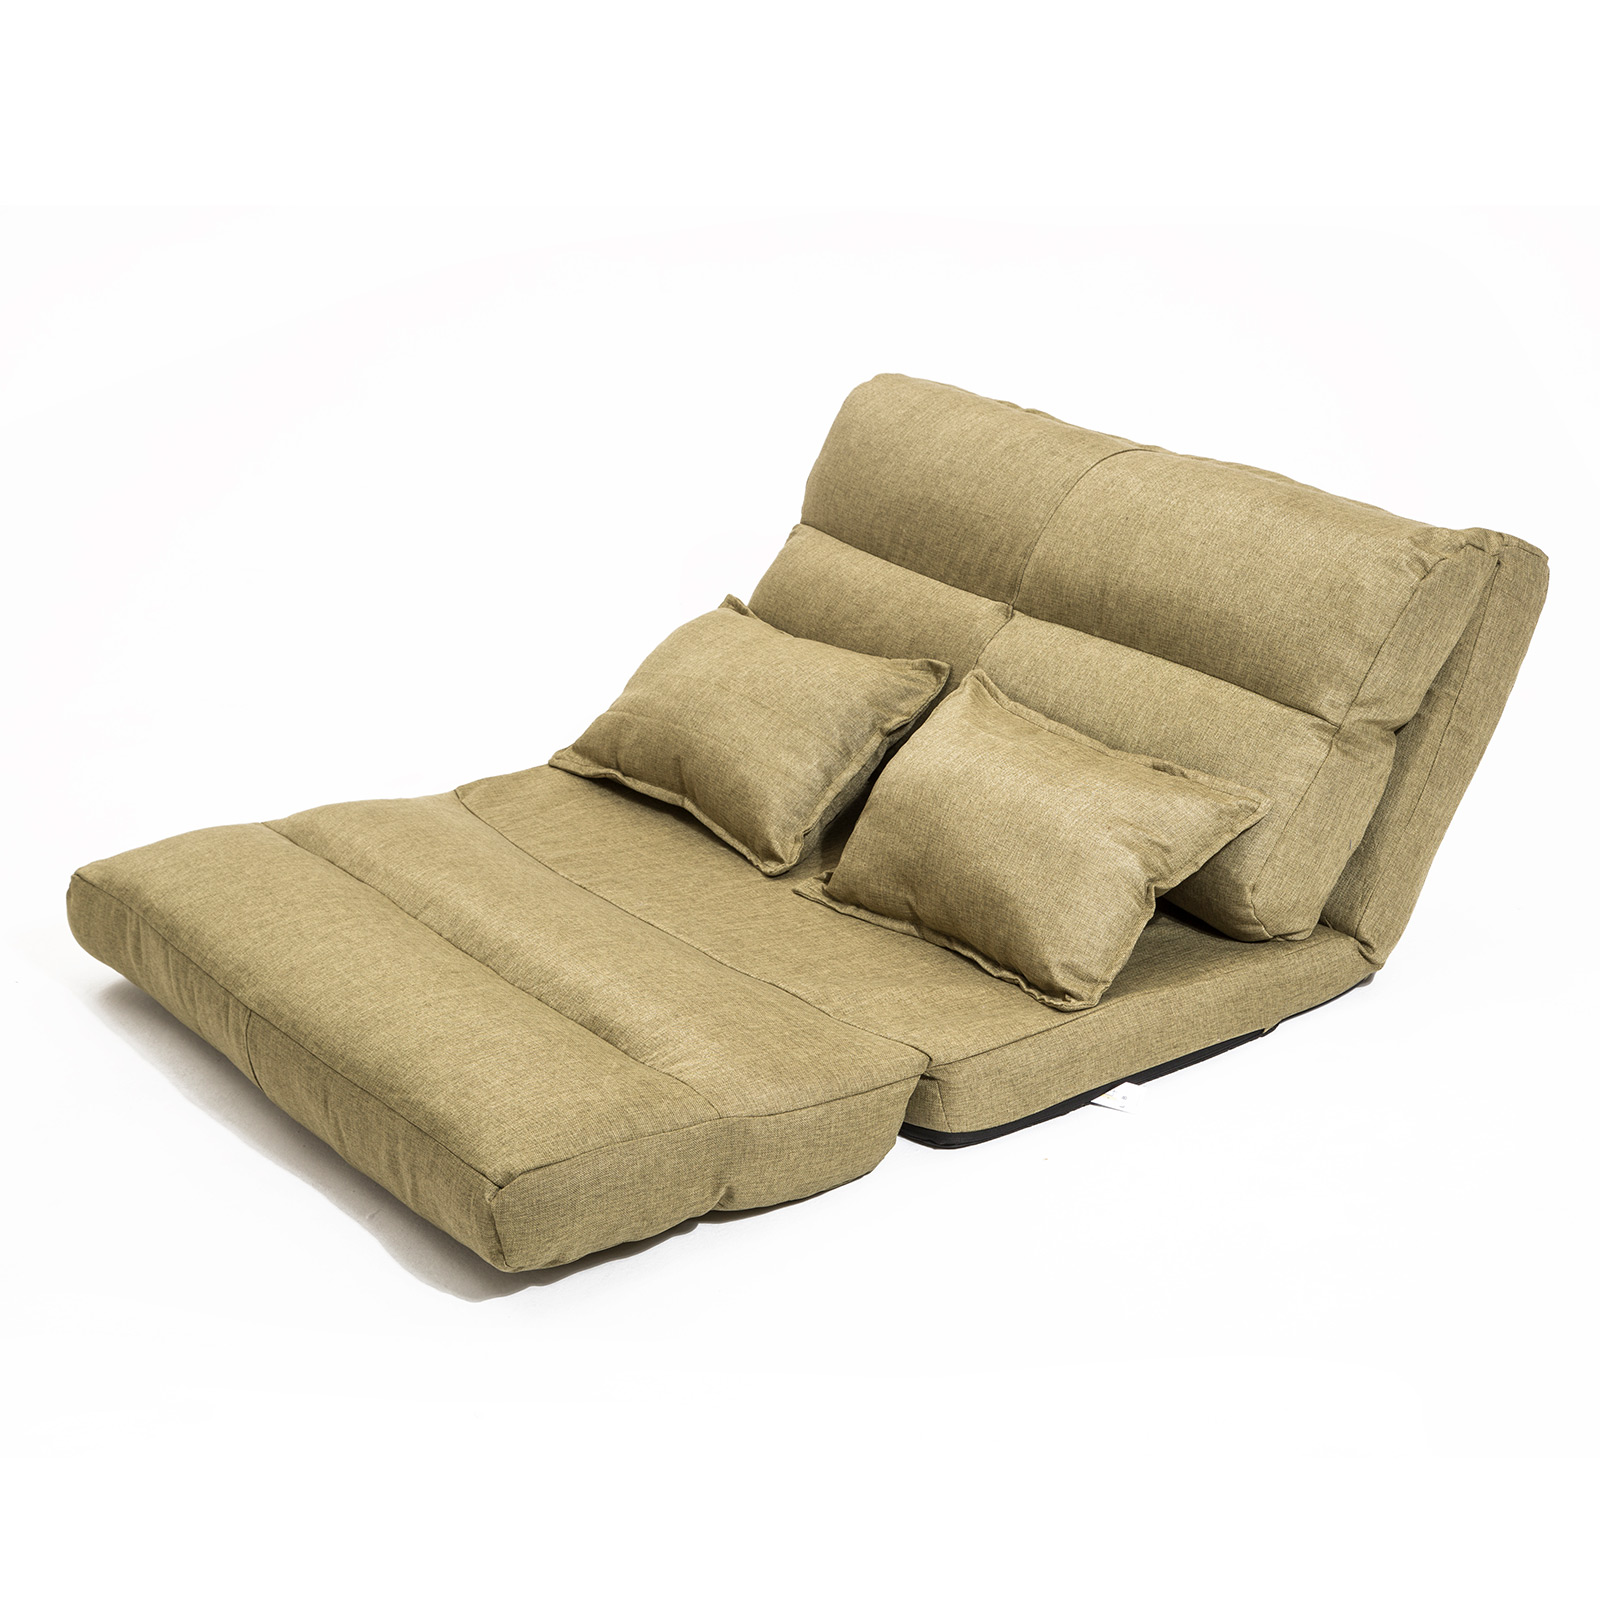 Lounge Sofa Fabric Double Bed PISCES - KHAKI